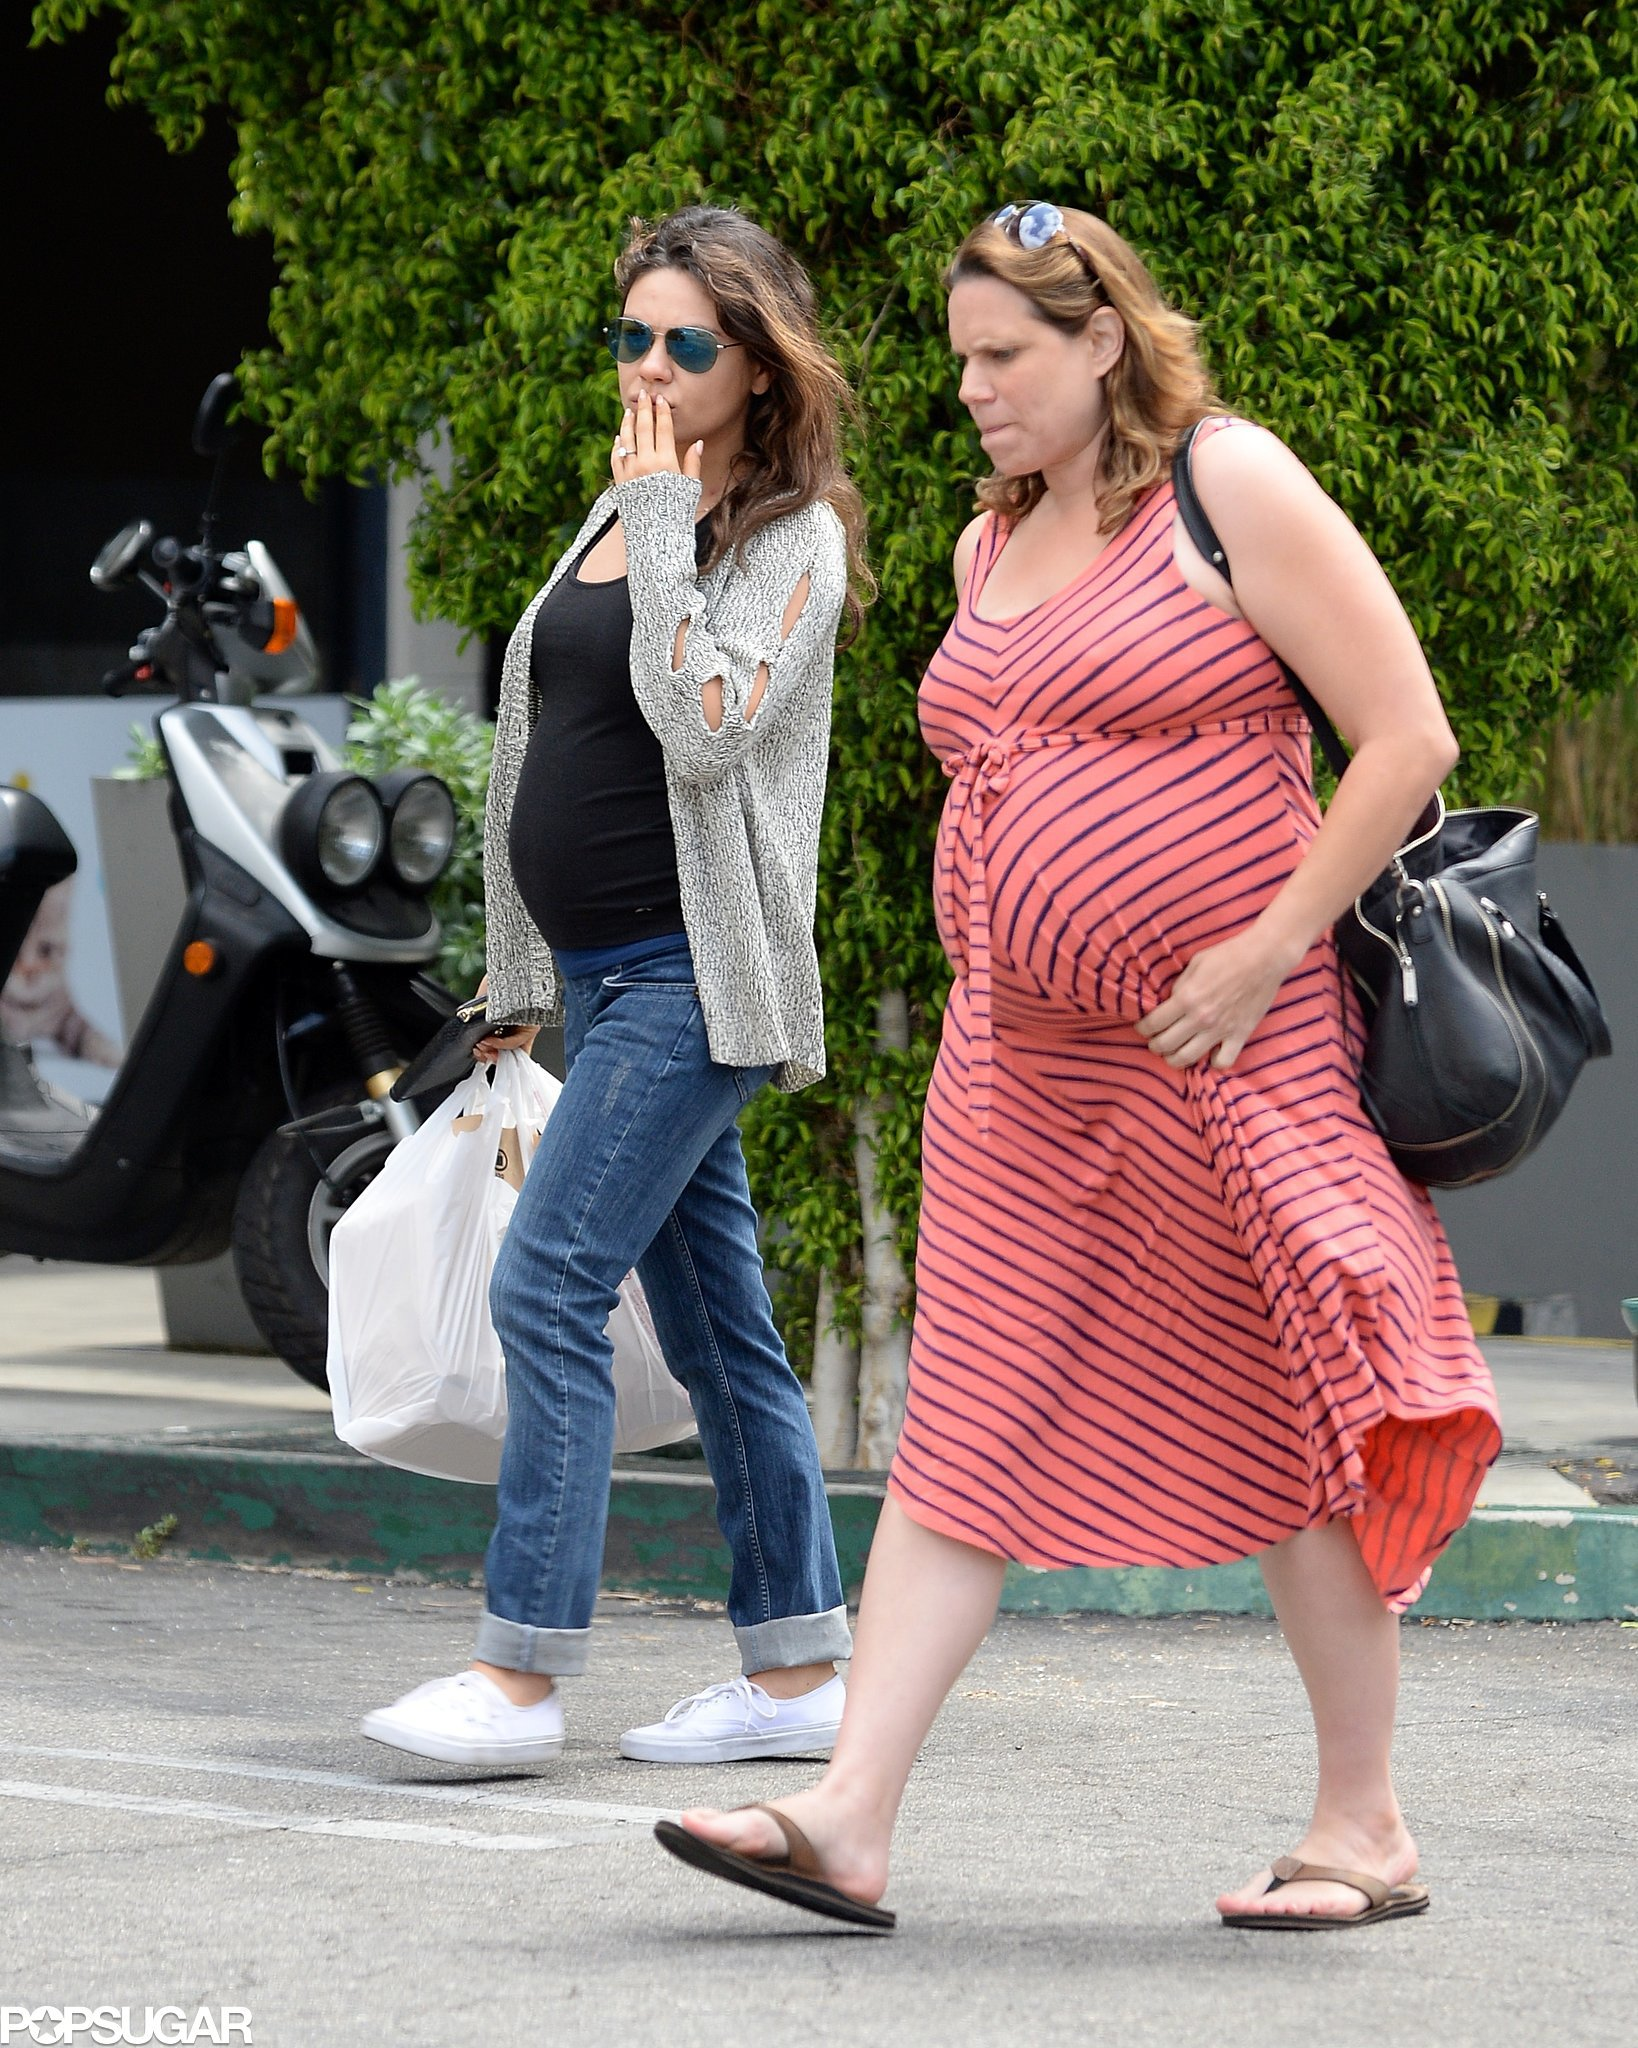 Ashton's Most Important Ladies Pair Up For a Pregnant Outing